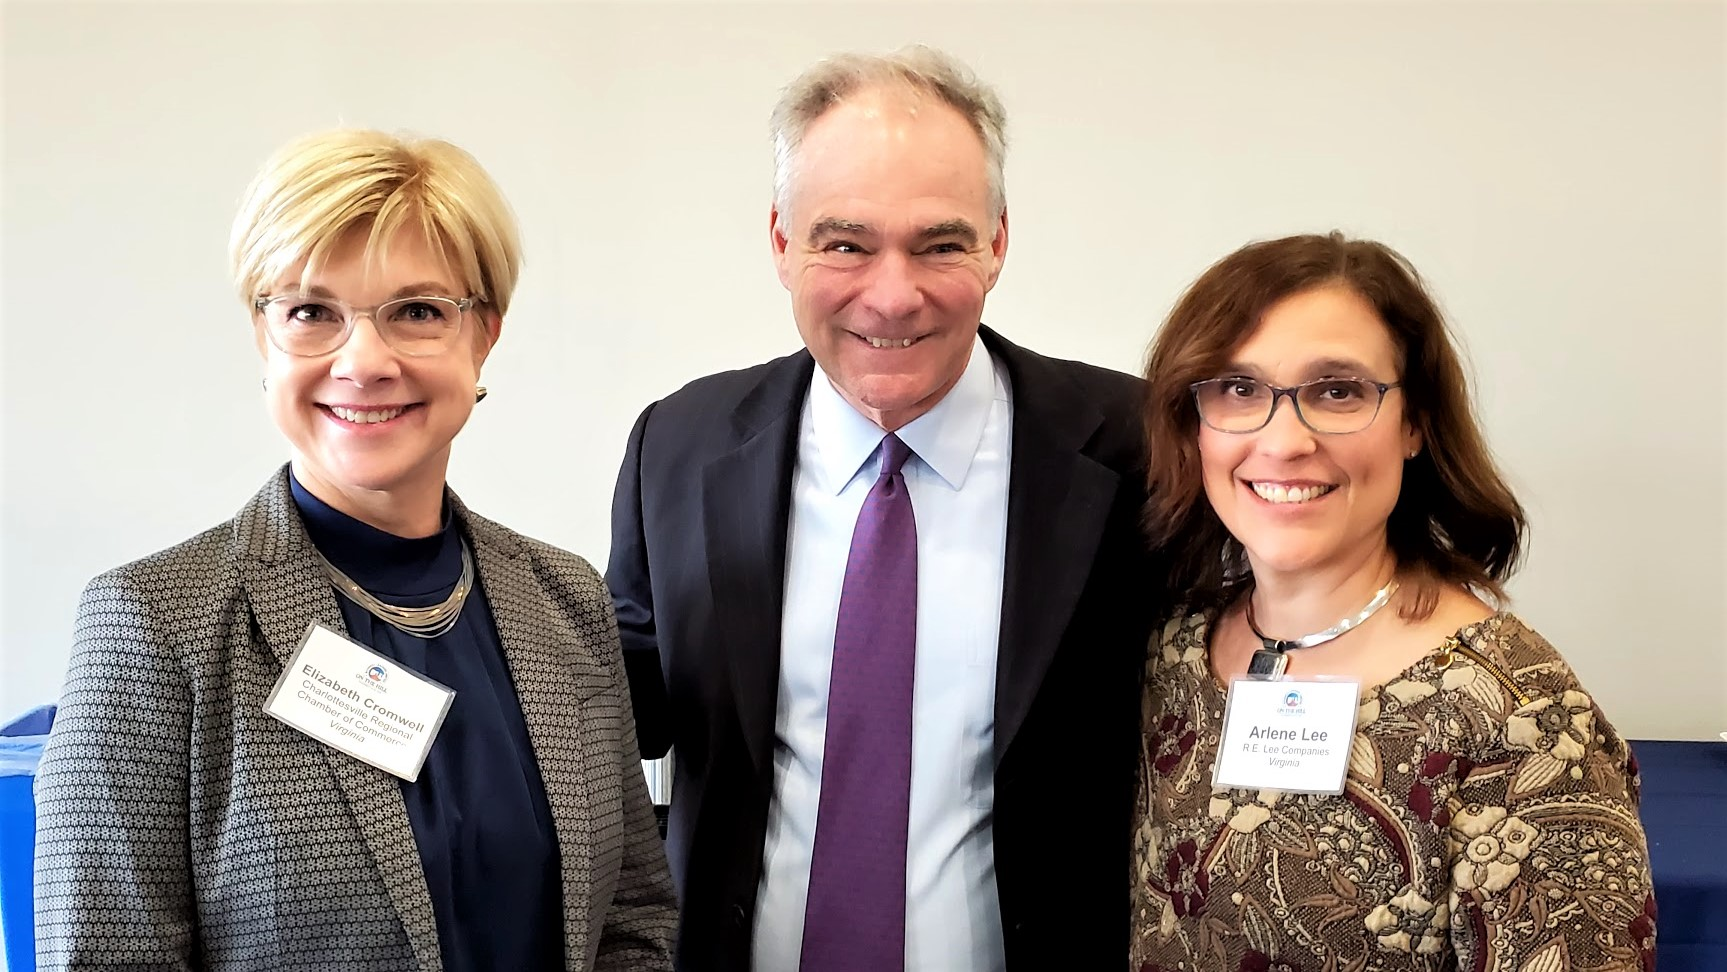 Elizabeth Cromwell and Arlene Lee with Senator Tim Kaine